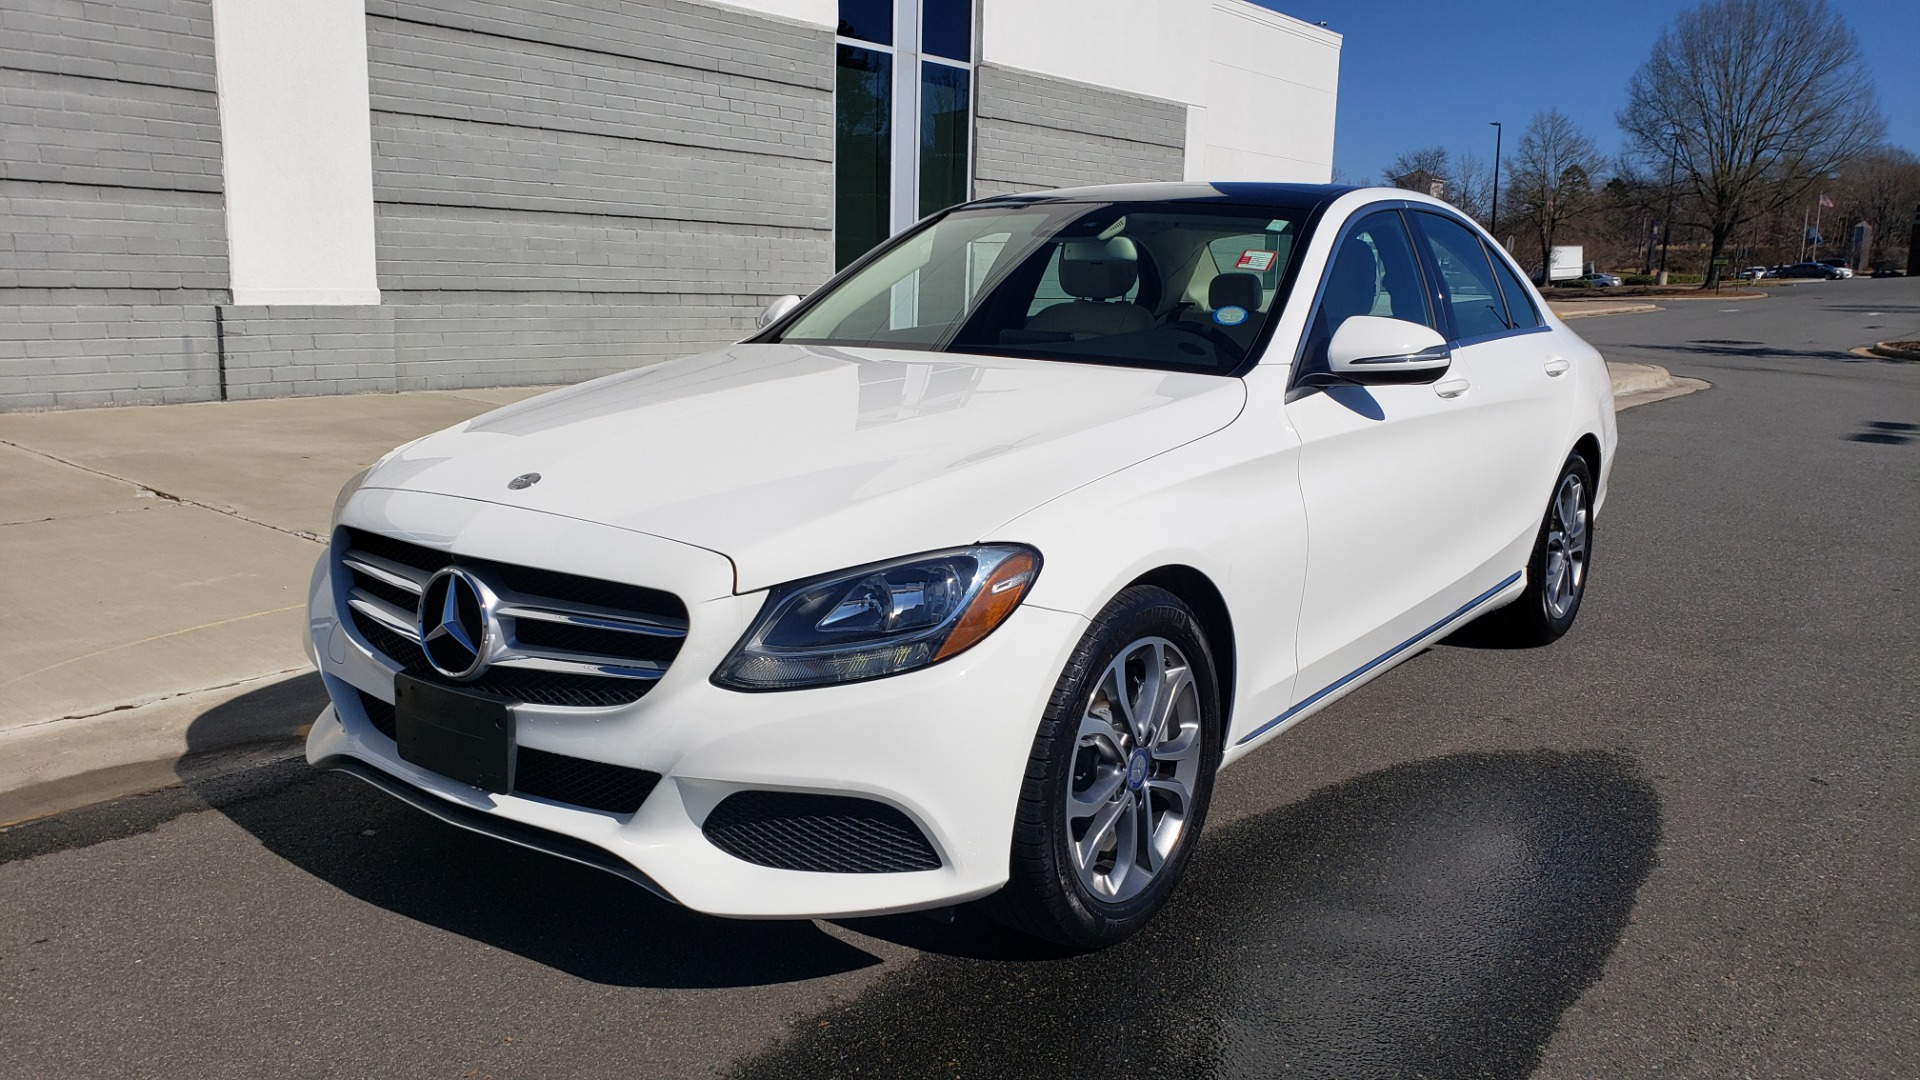 Used 2017 Mercedes-Benz C-CLASS C300 / 2.0L / 7-SPD AUTO / BSA / PANO-ROOF / REARVIEW for sale Sold at Formula Imports in Charlotte NC 28227 1